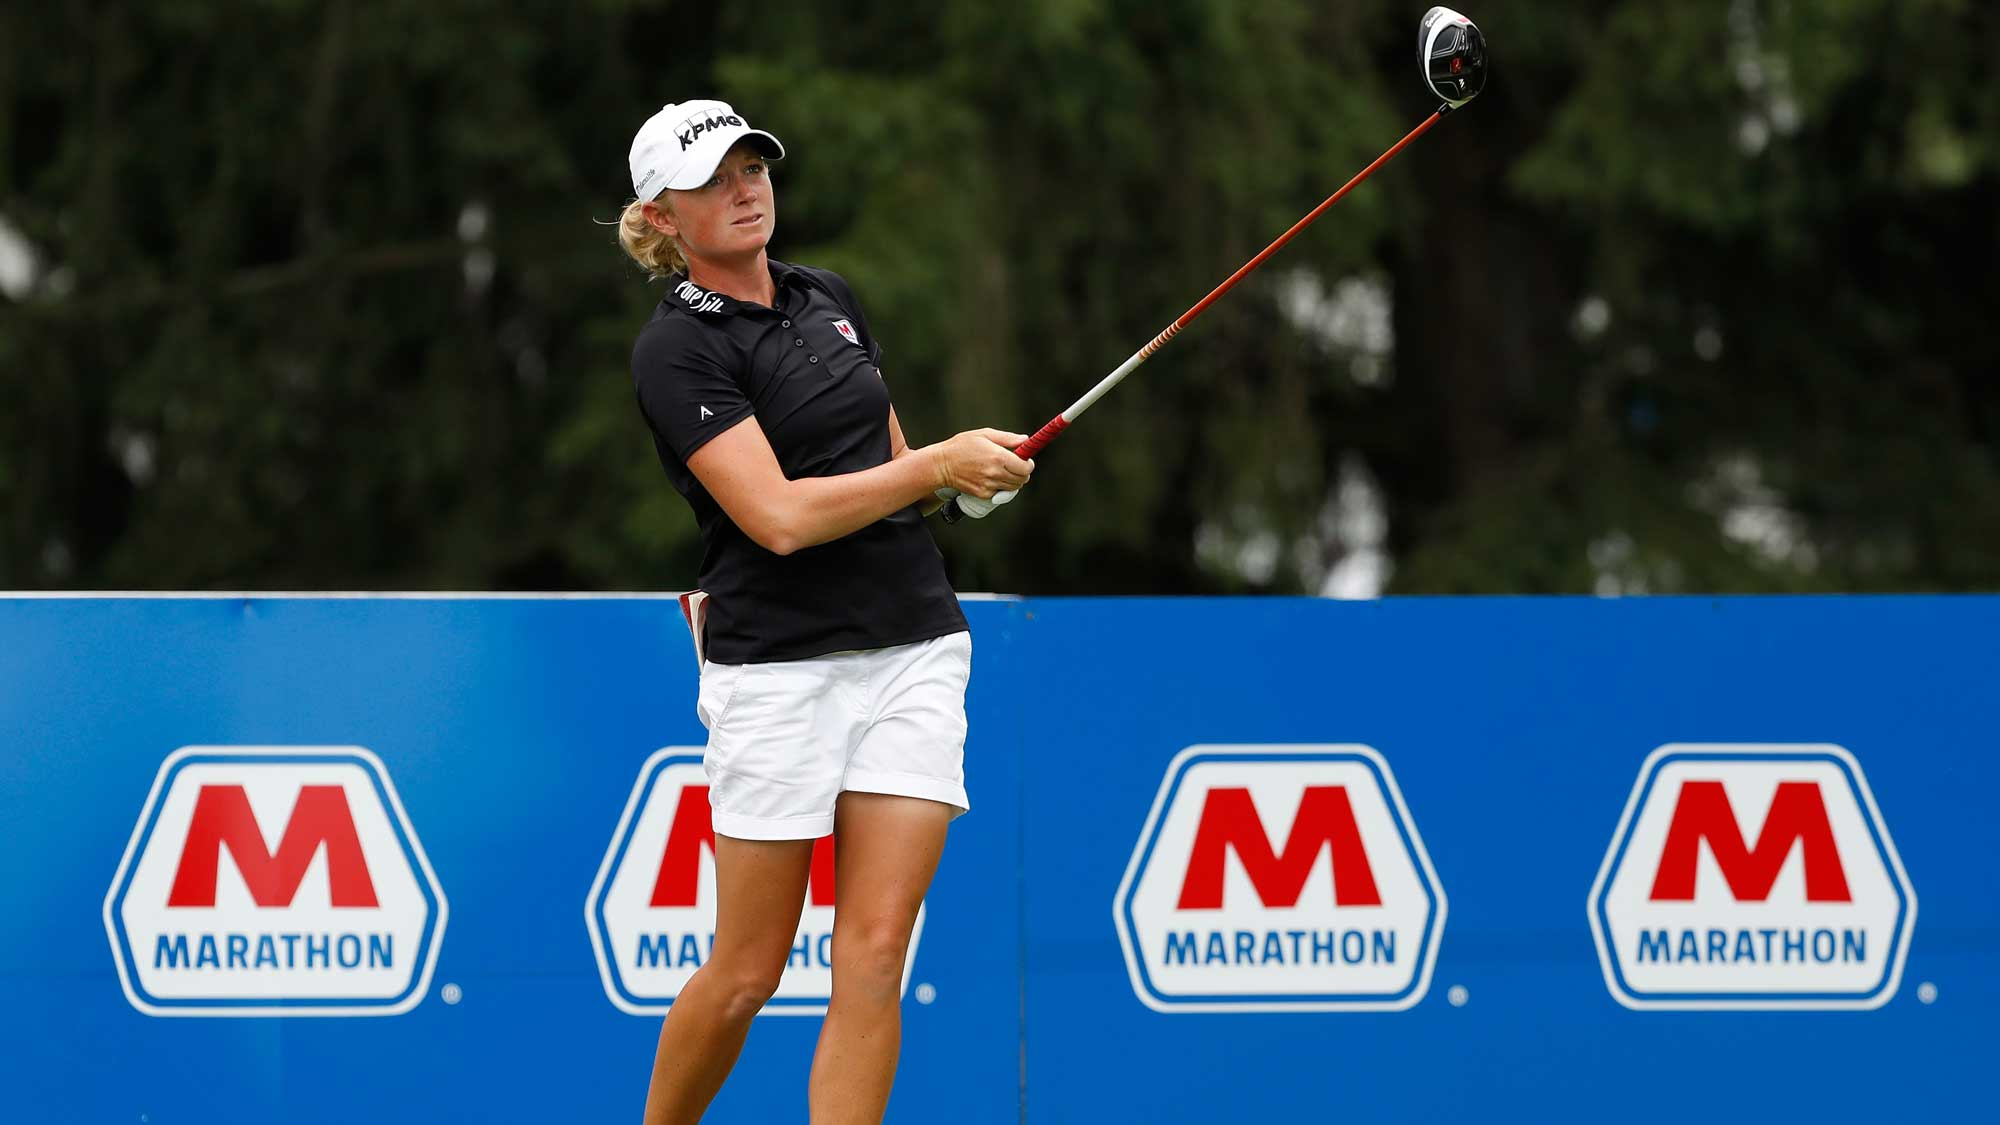 Stacy Lewis hits her drive on the 18th hole during the third round of the Marathon Classic presented by Owens Corning and O-I